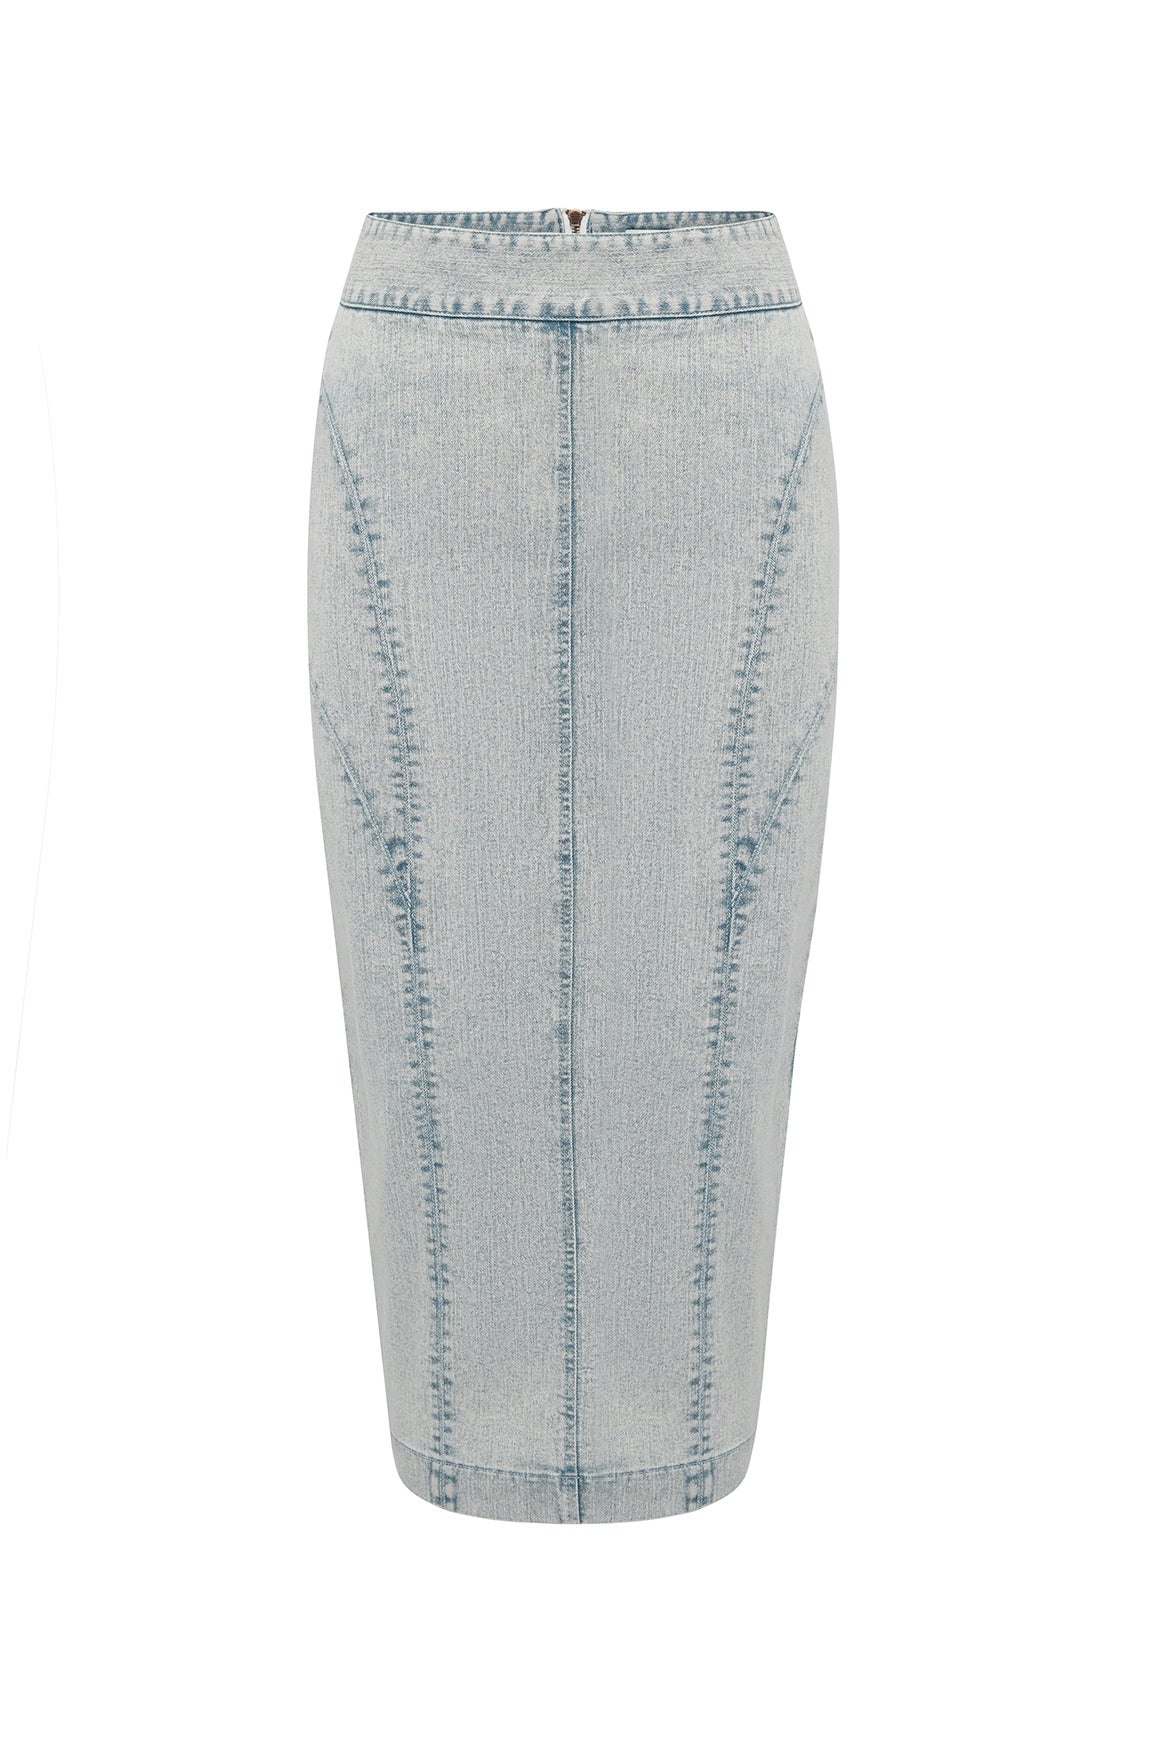 ALIAS DENIM SKIRT